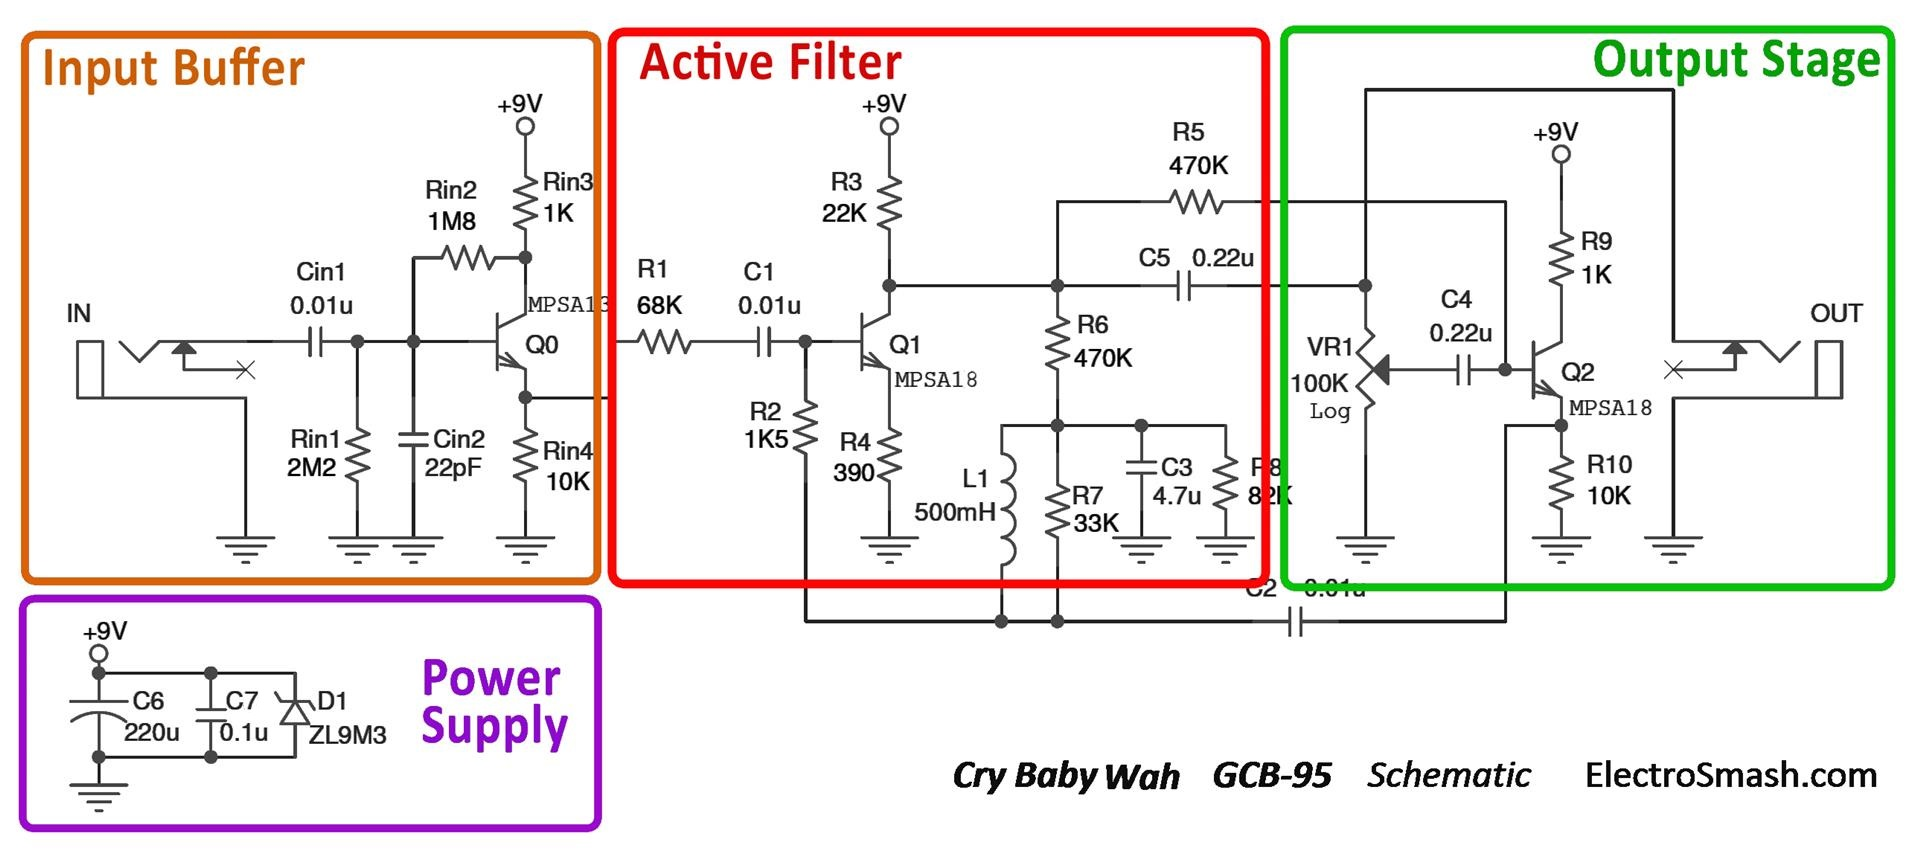 cry baby wah gcb 95 schematic parts electrosmash dunlop crybaby gcb 95 circuit analysis crybaby gcb-95 wiring diagram at fashall.co